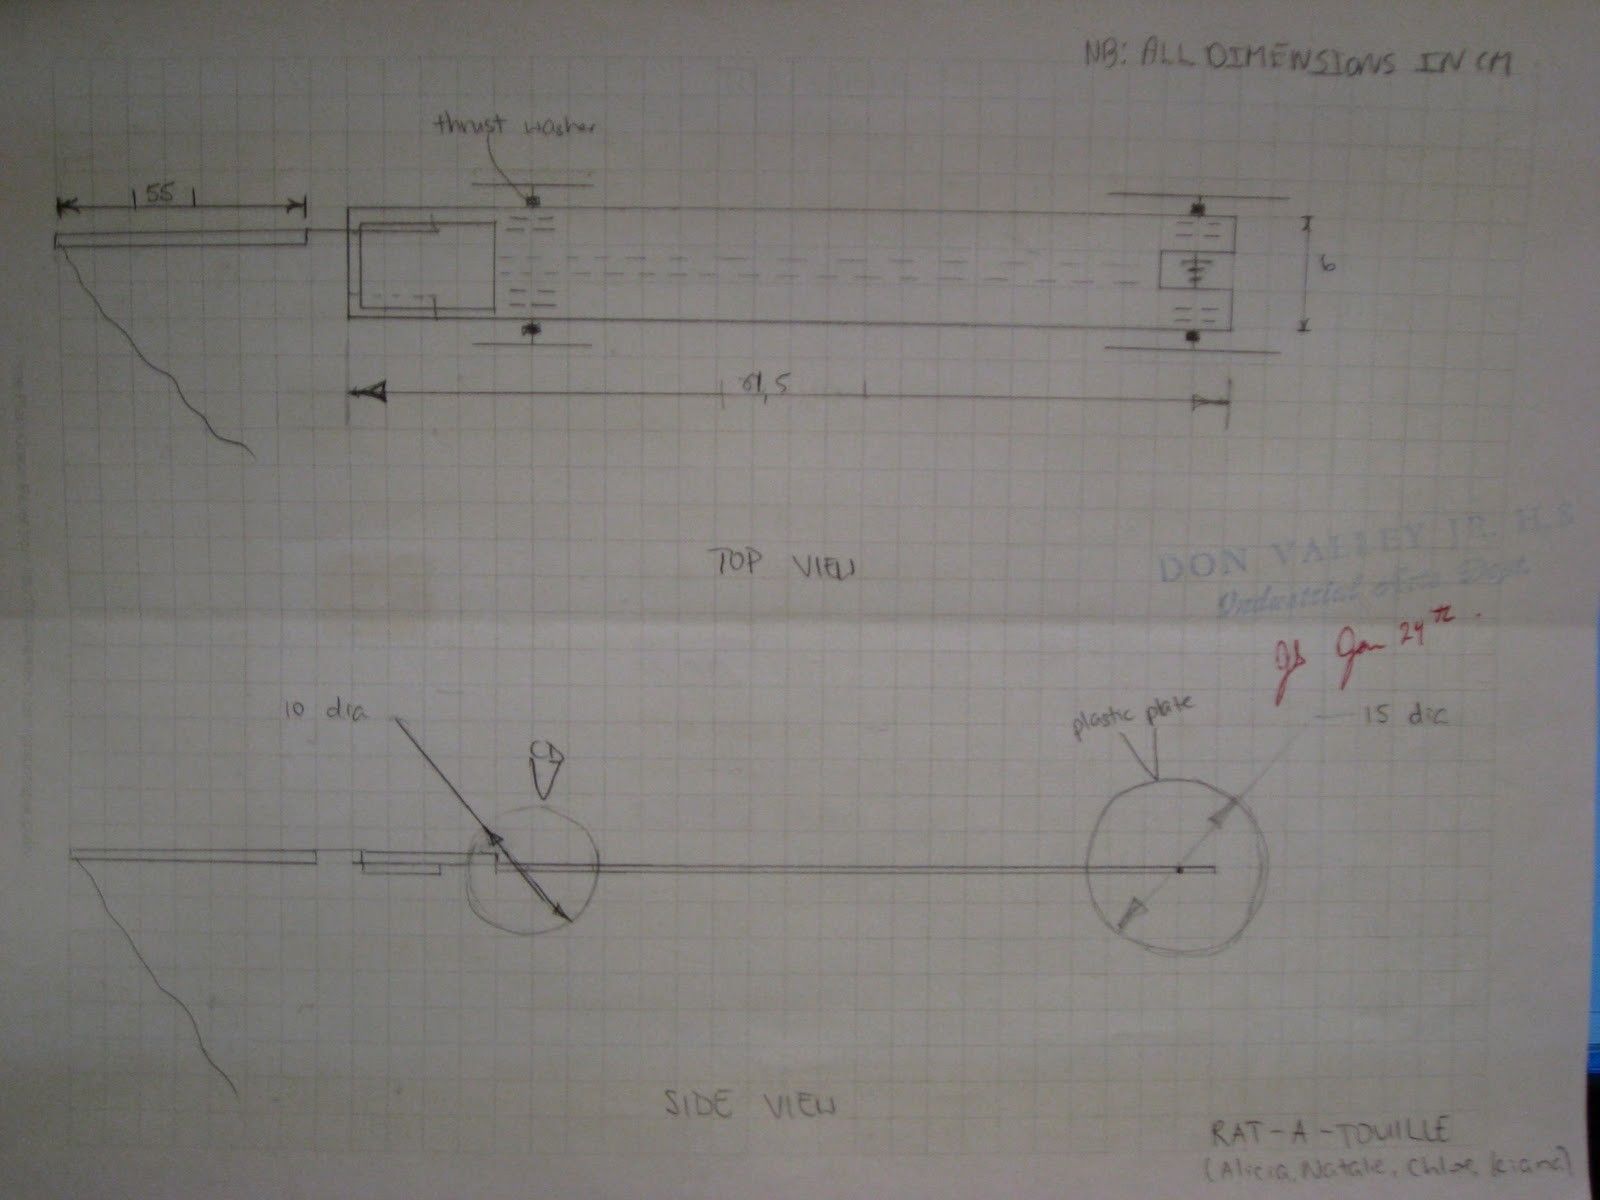 Mousetrap Car Diagram the Re Invented Don Valley Jhs Mouse Trap Car Pics & Vids Of Mousetrap Car Diagram